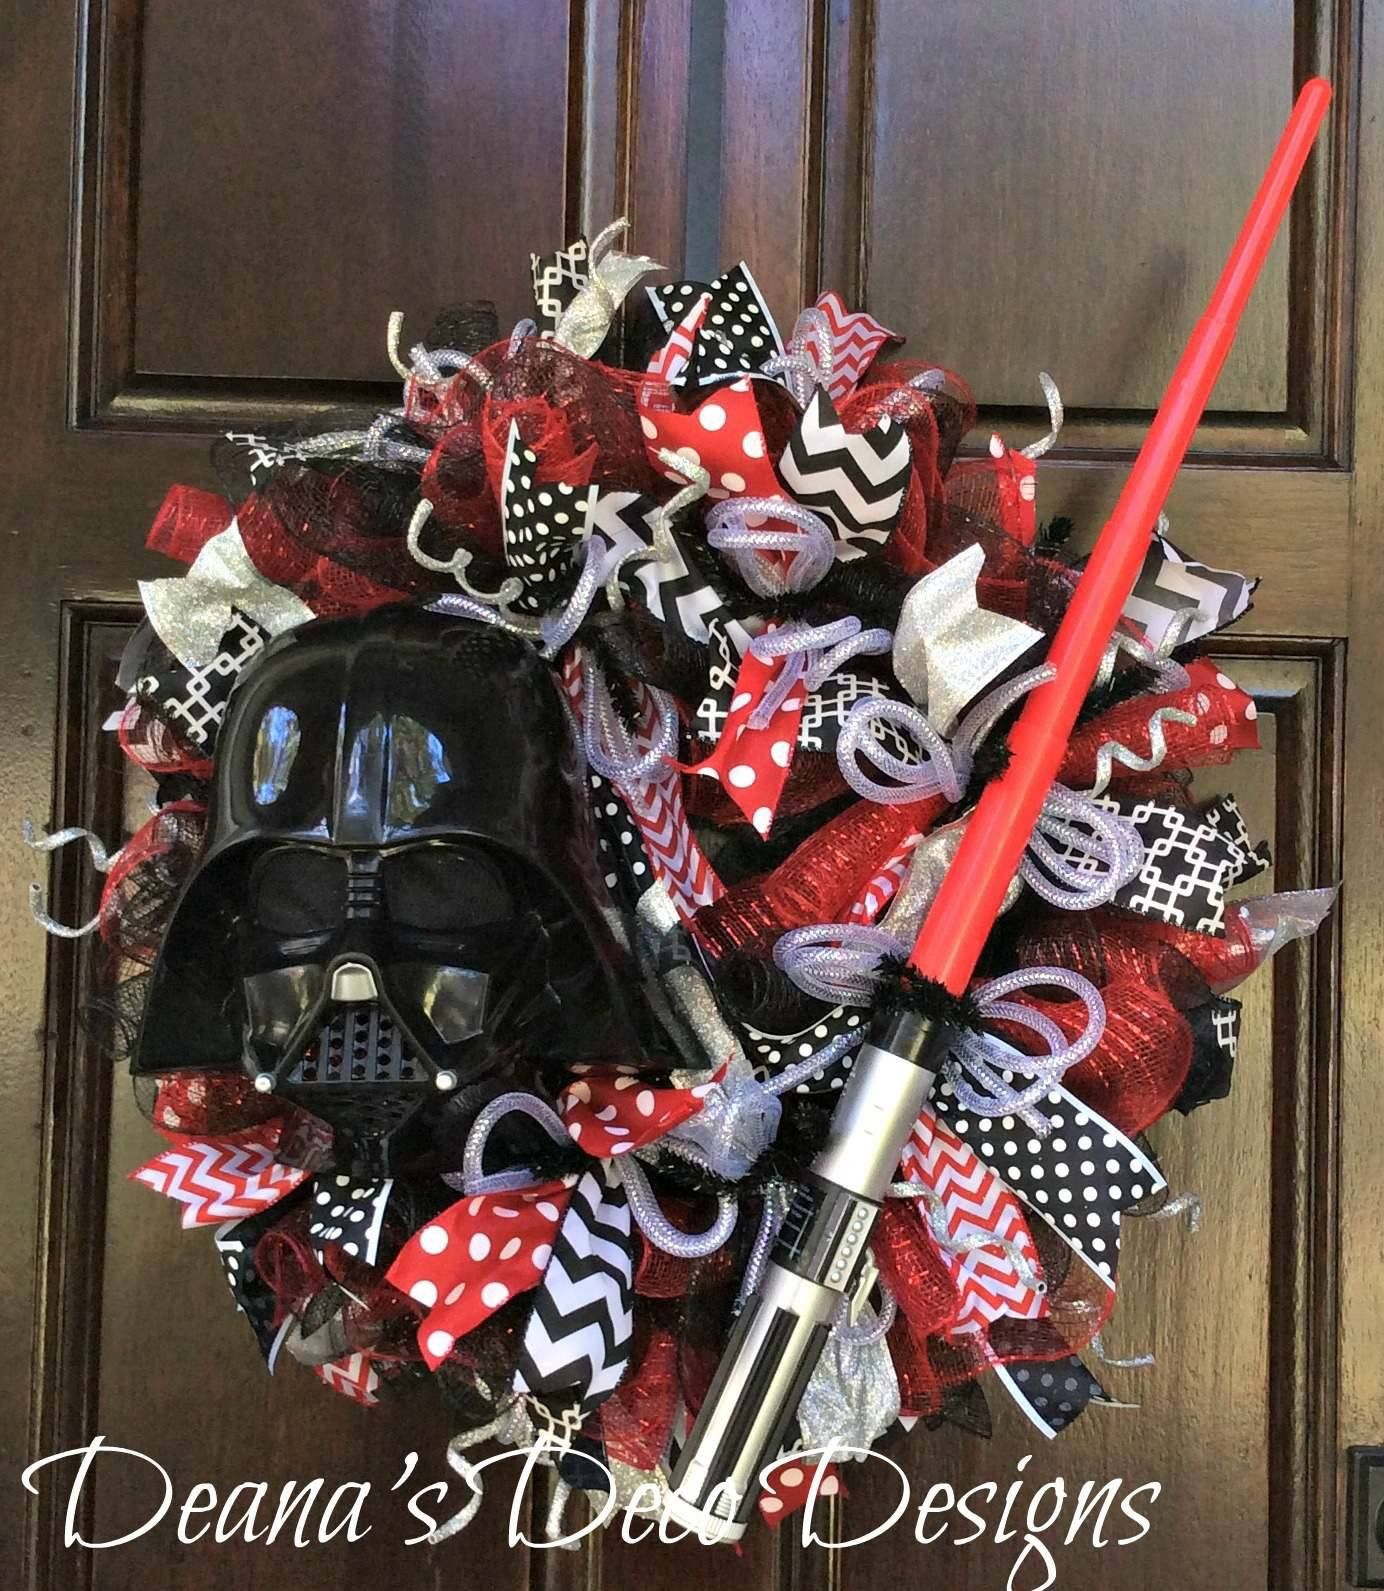 star wars darth vader deco mesh wreath deana 39 s deco designs pinterest star wars darth. Black Bedroom Furniture Sets. Home Design Ideas